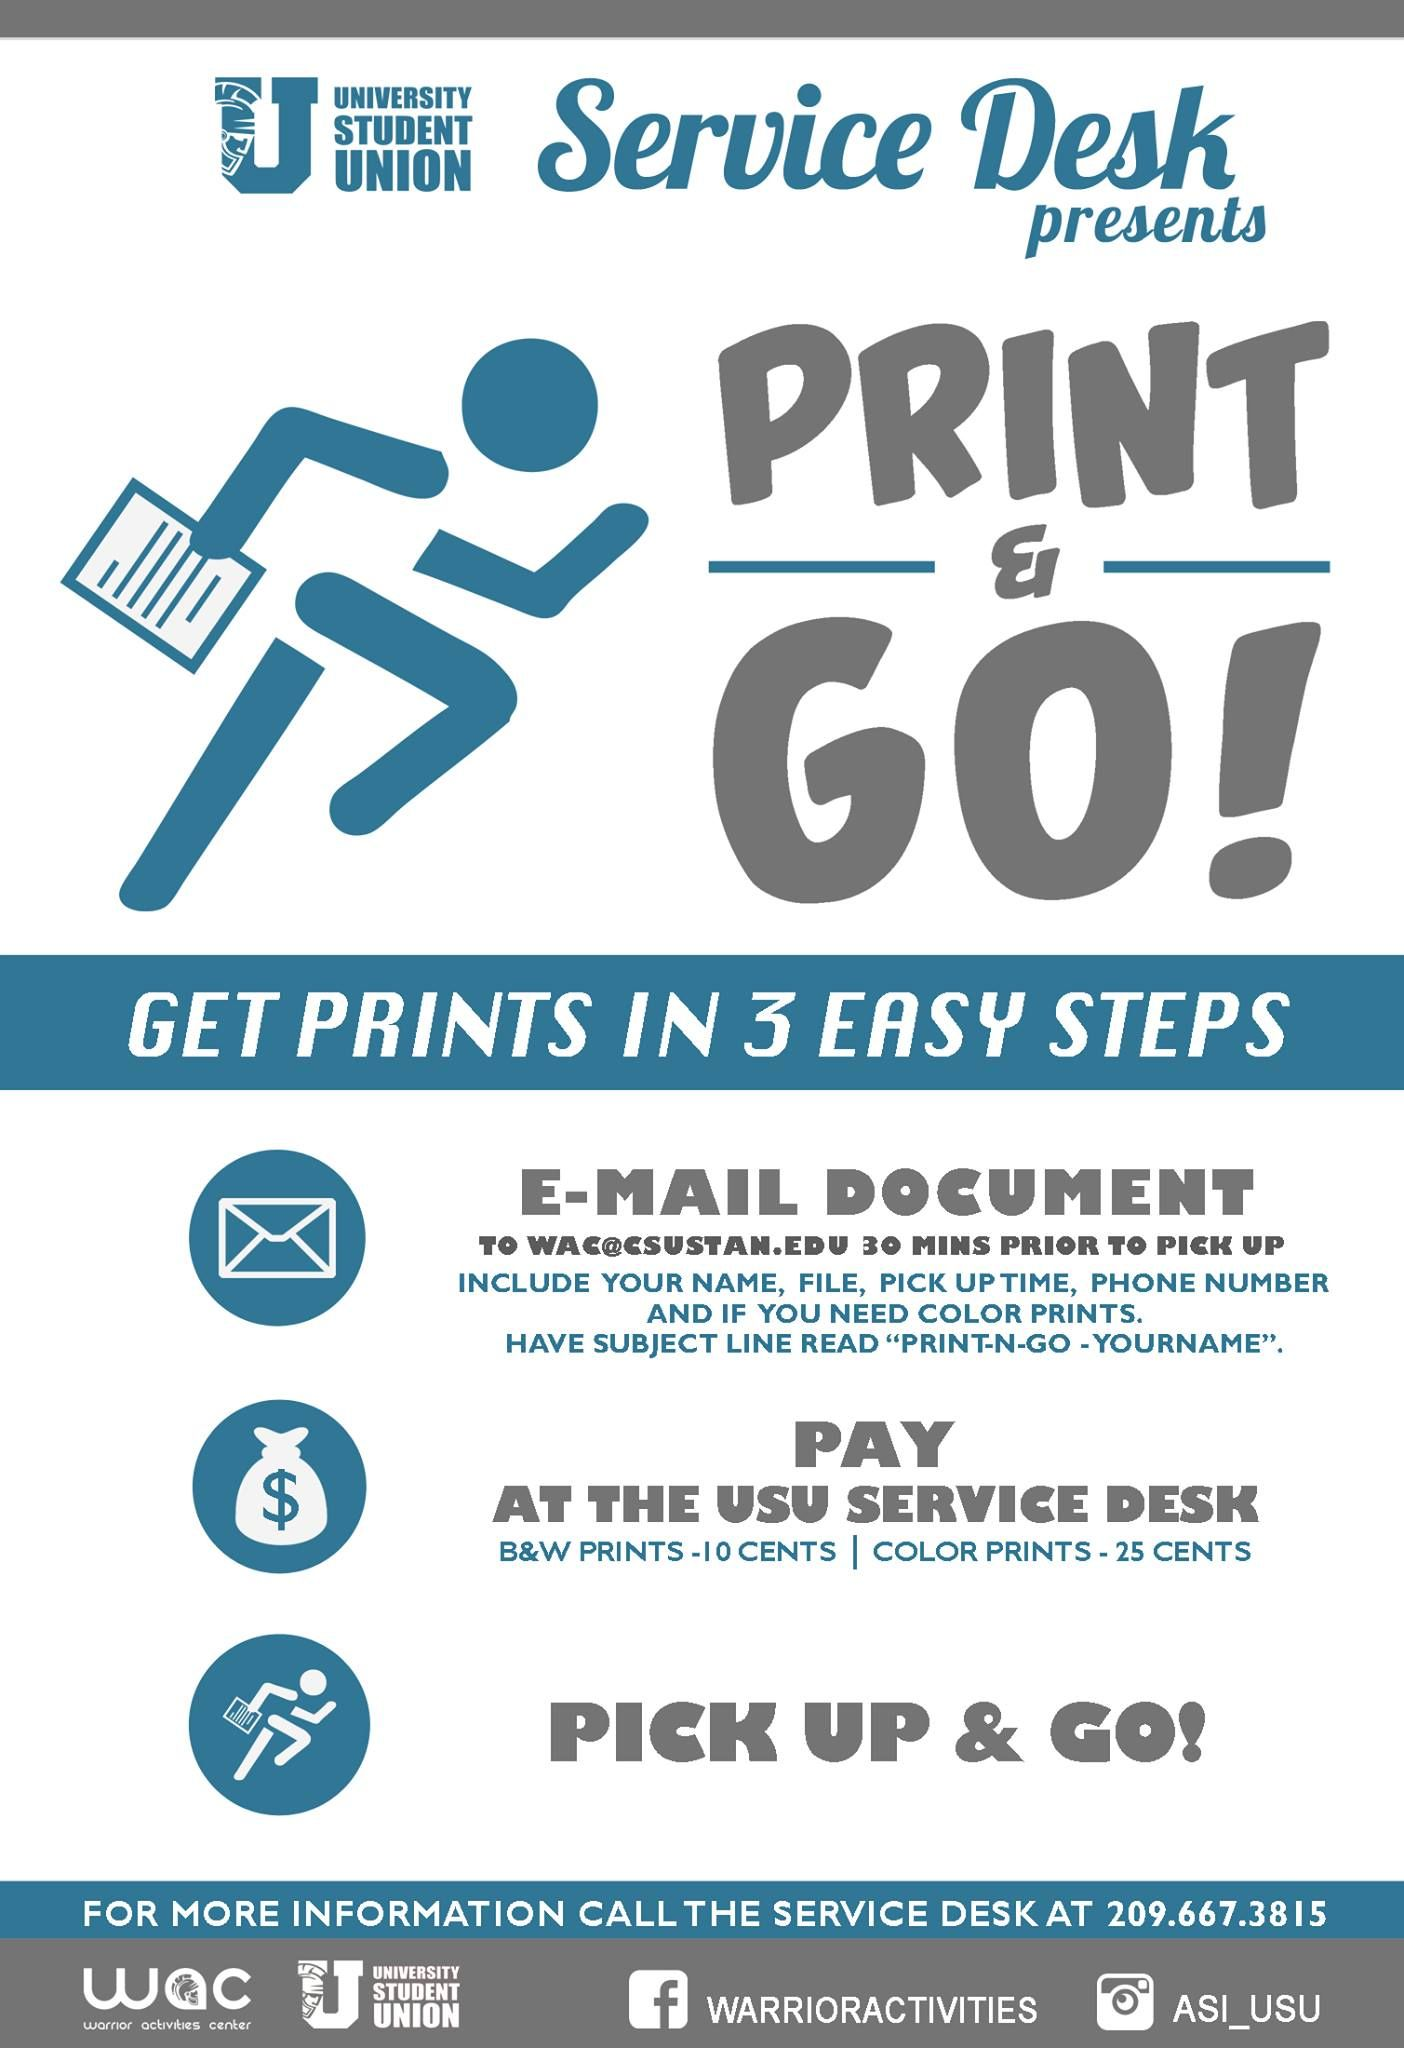 Print Go Services Are Available At The Usu Service Desk